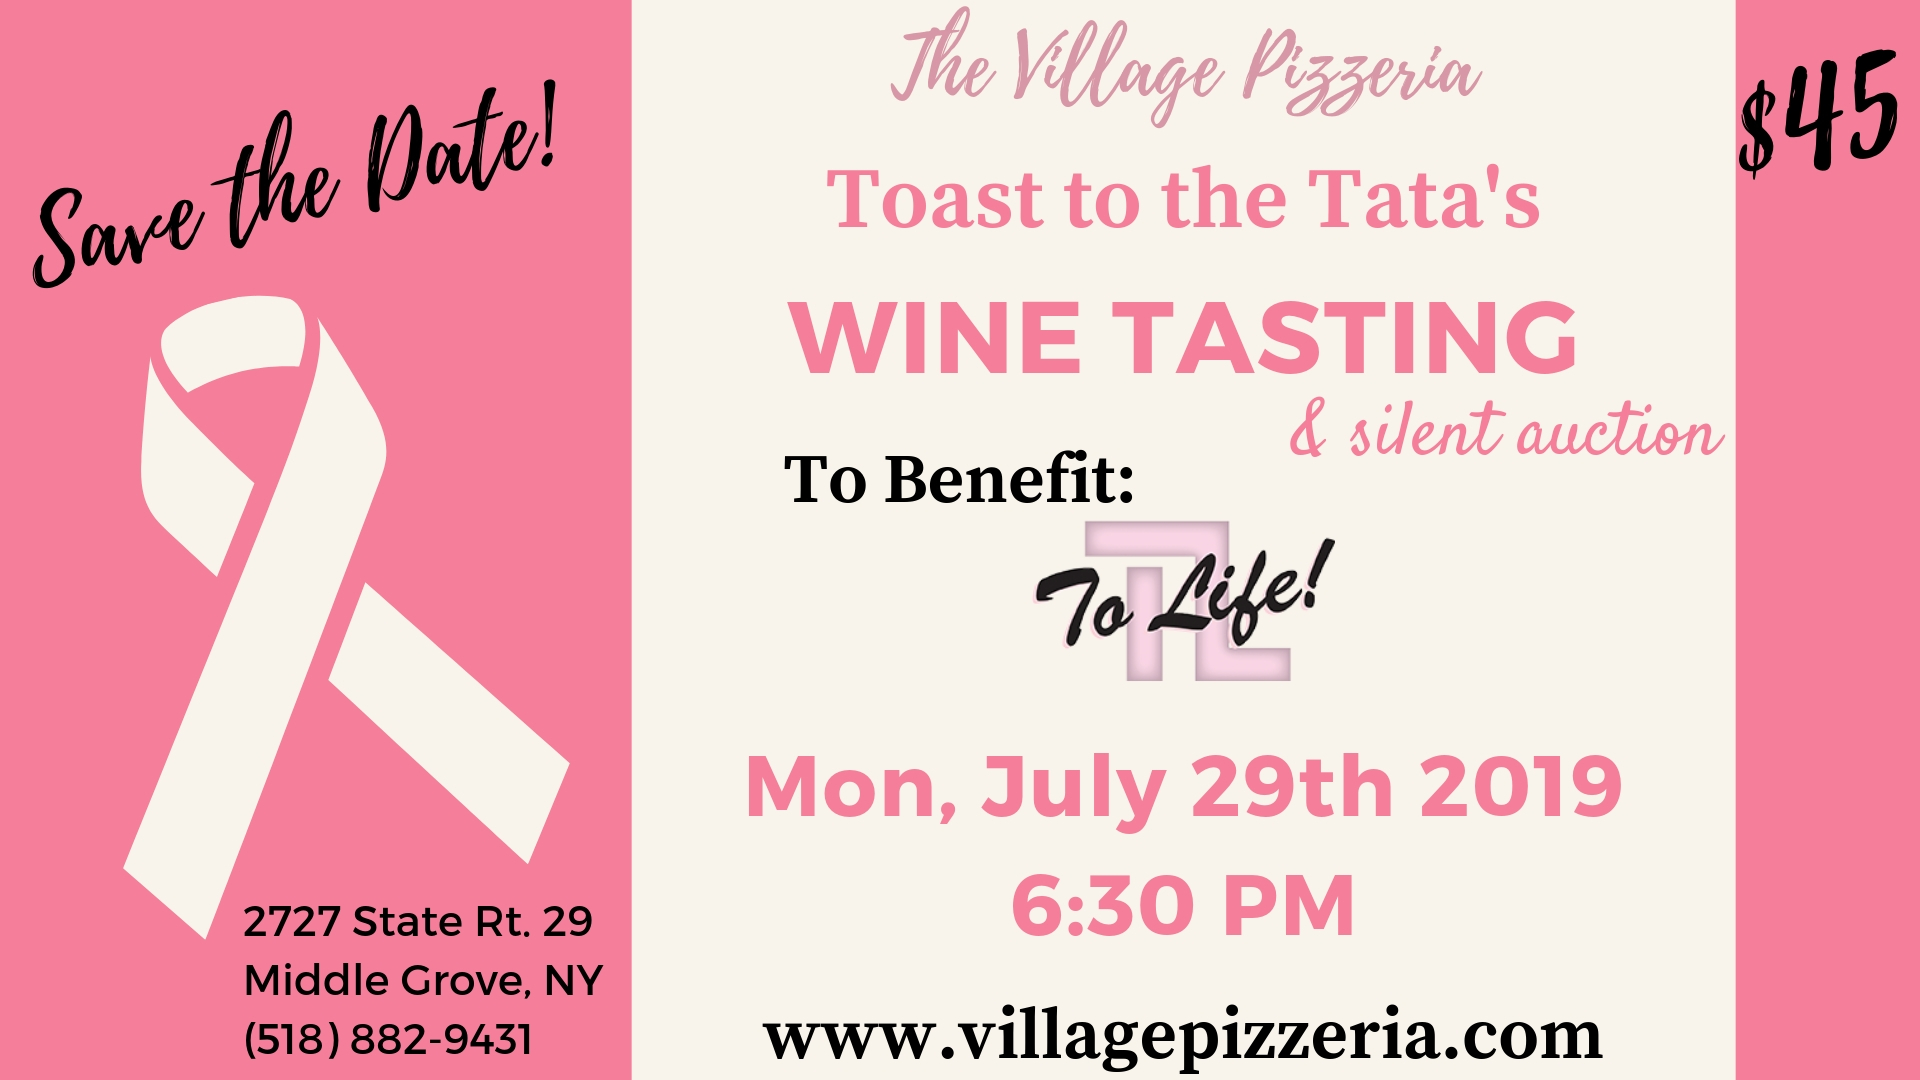 Save the date! The Village Pizzeria Toast to the tatas Wine Tasting & silent auction. To Benefit to life! Monday July 29th 2019 6:30 PM